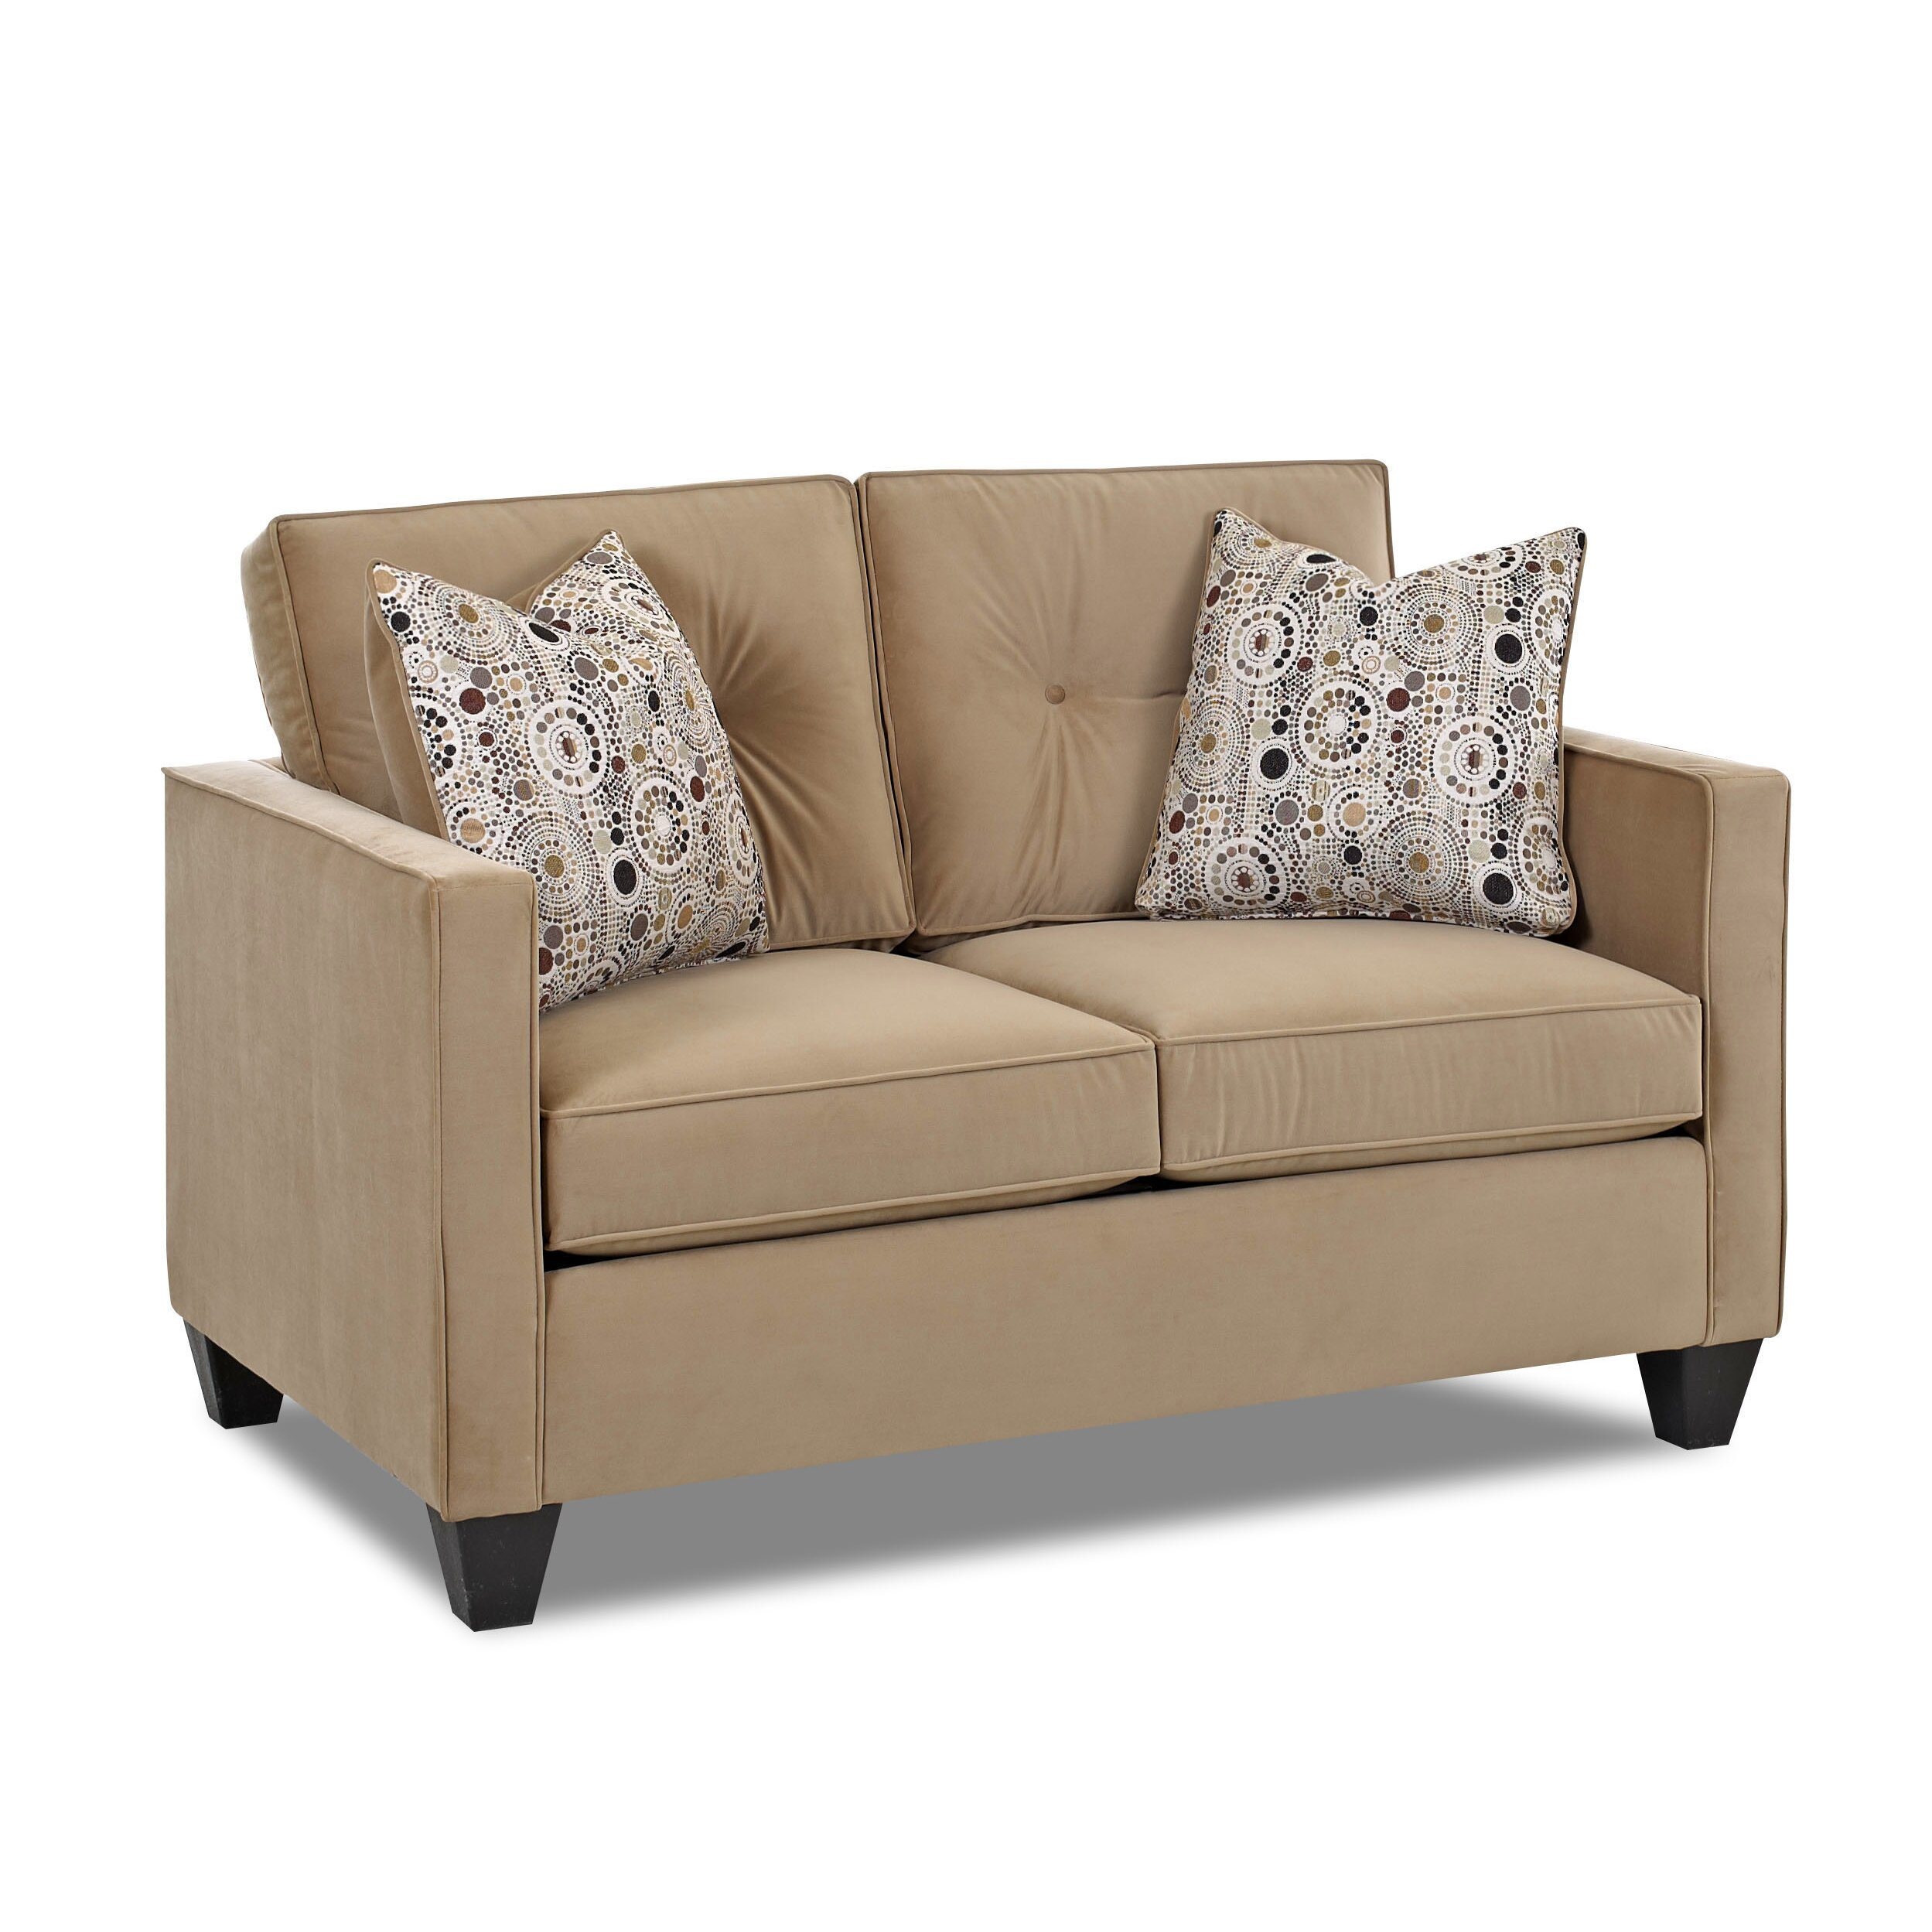 Klaussner Furniture Derry Loveseat & Reviews | Wayfair